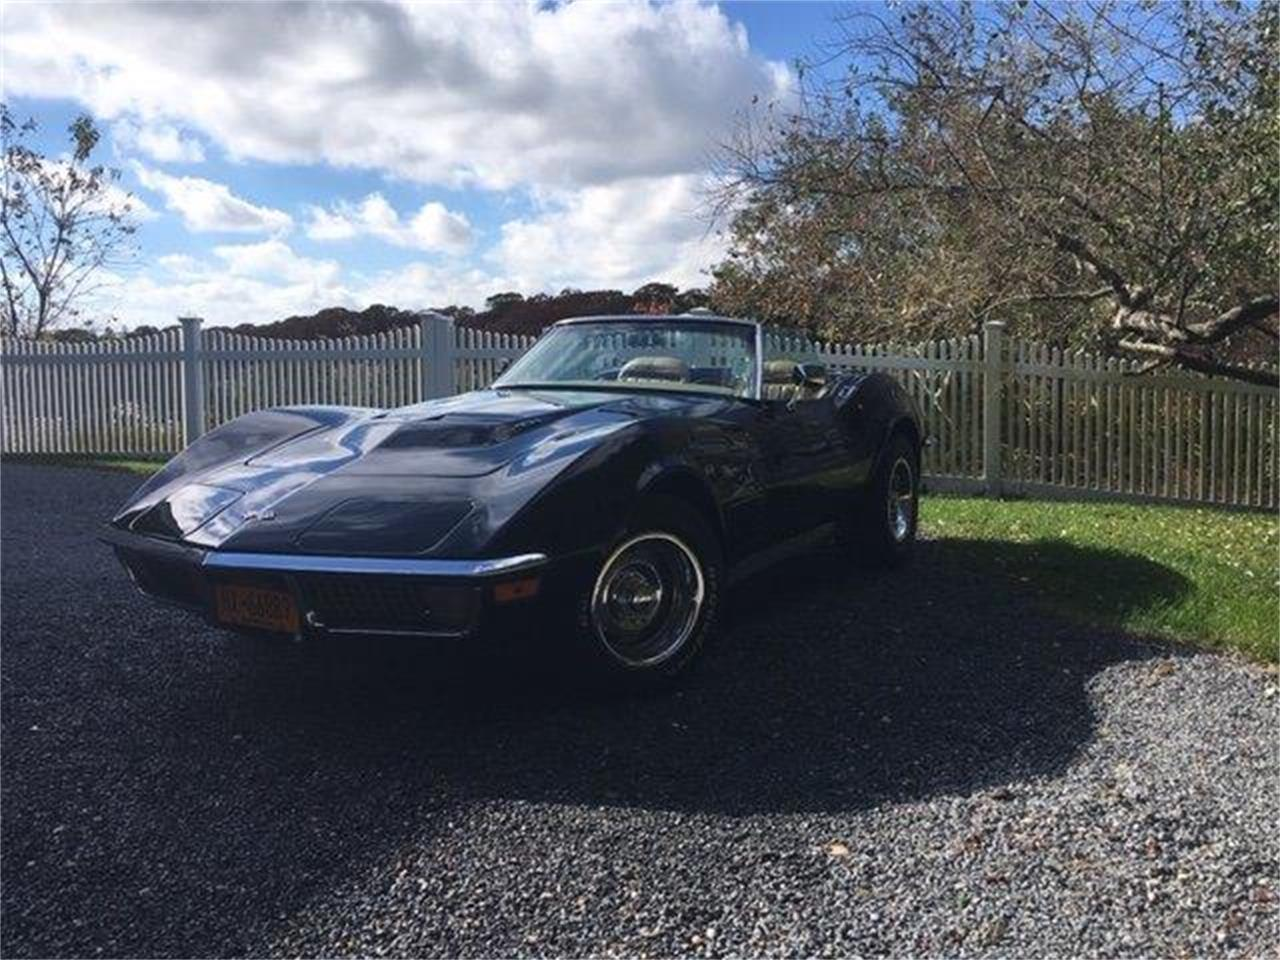 1970 Chevrolet Corvette Stingray (CC-1323296) for sale in Westhampton, New York